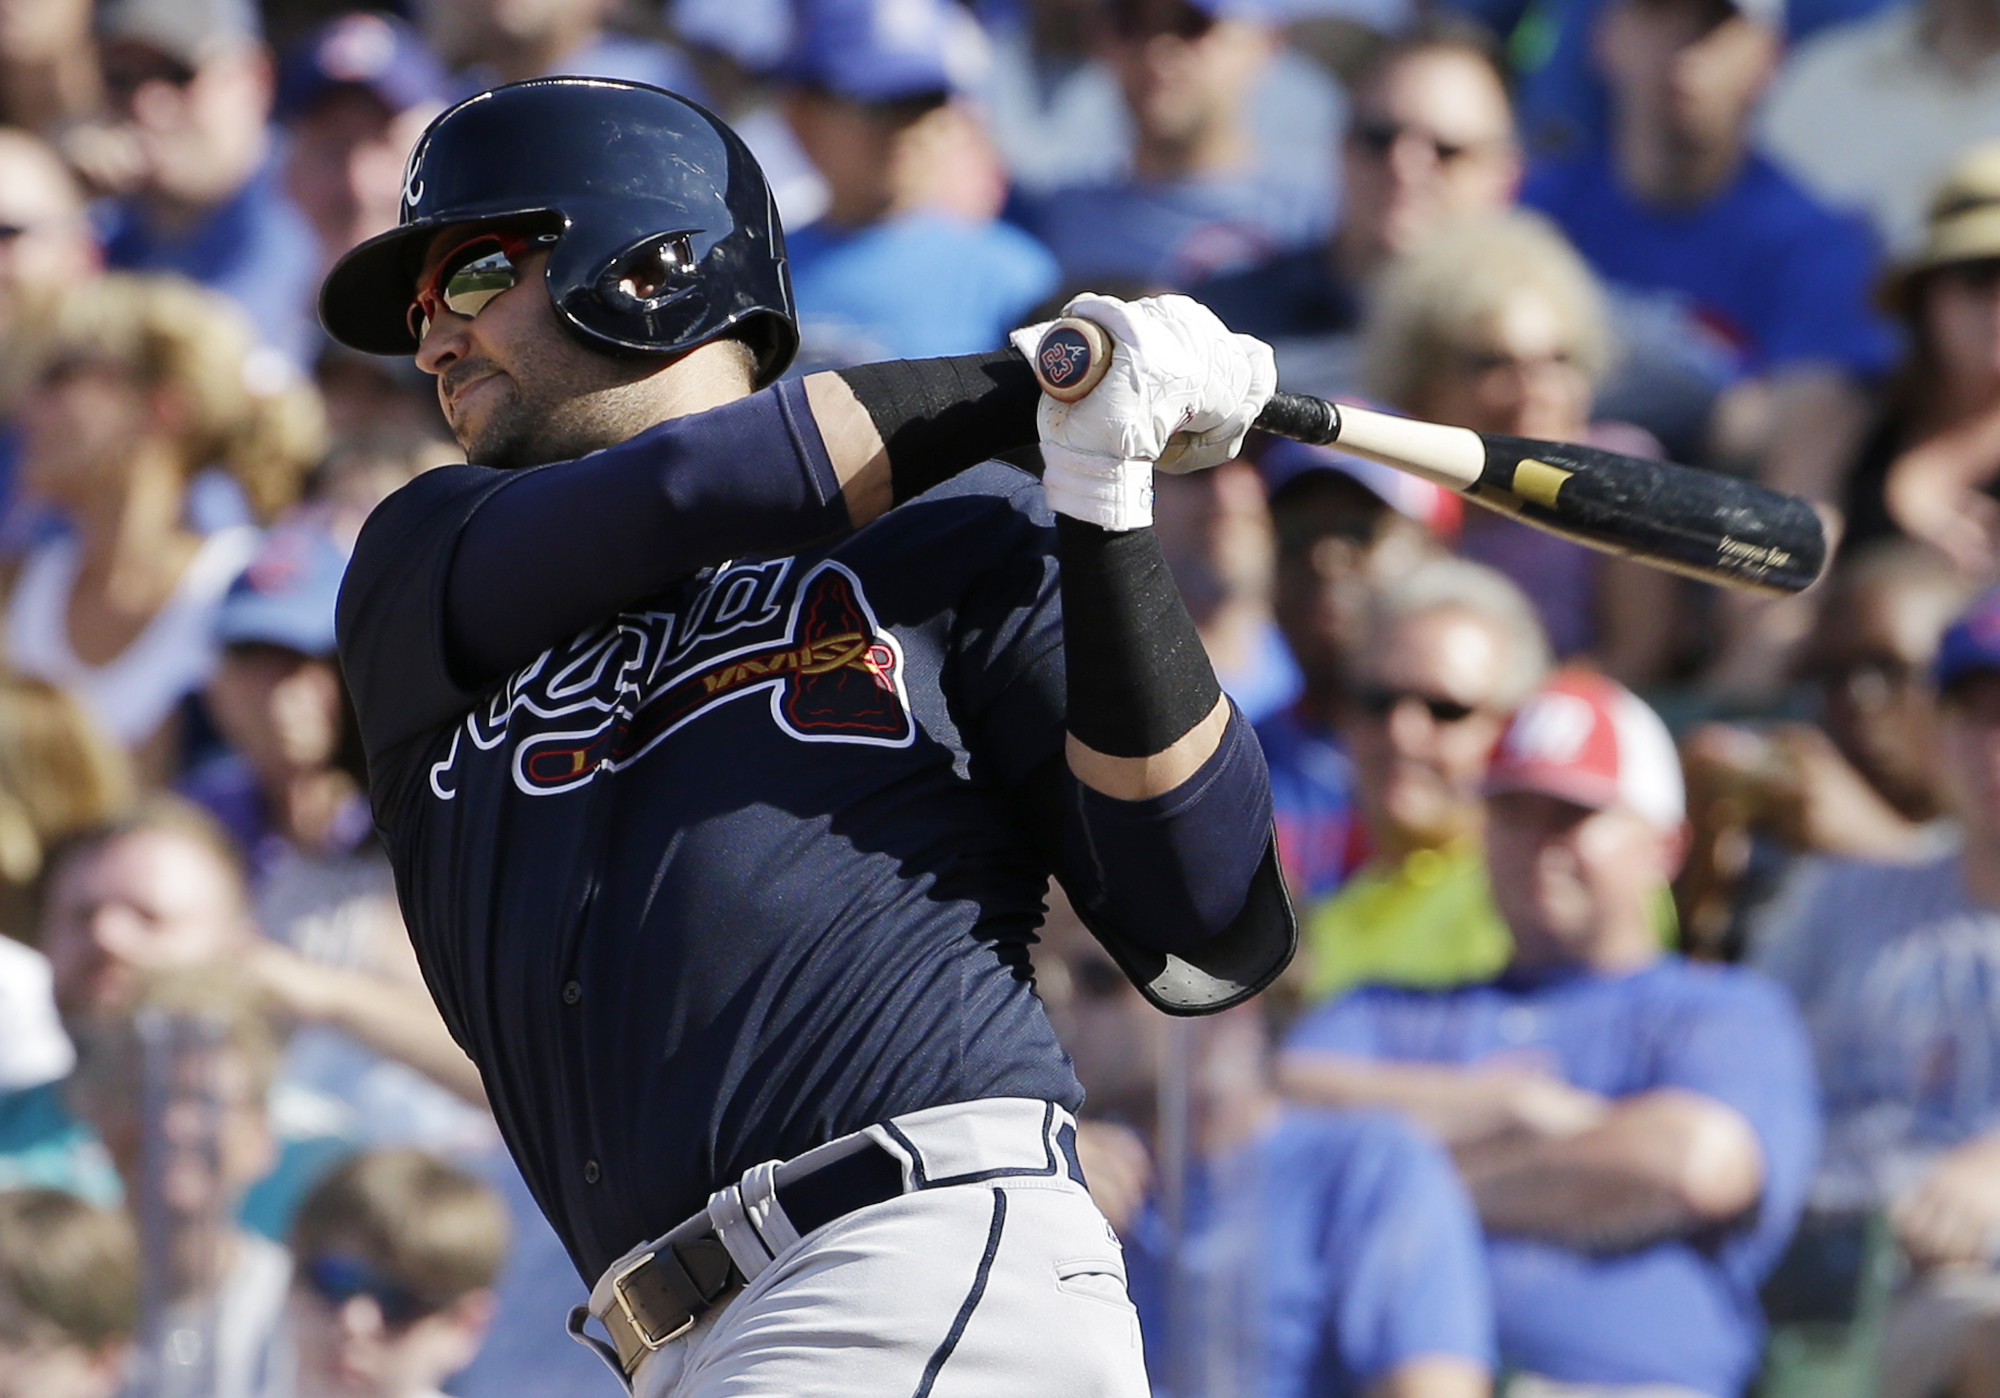 FILE - In this Aug. 22, 2015, file photo, Atlanta Braves' Nick Swisher hits a two-run home run against the Chicago Cubs during the fifth inning of a baseball game in Chicago. The Braves have released Swisher. (AP Photo/Nam Y. Huh, File)